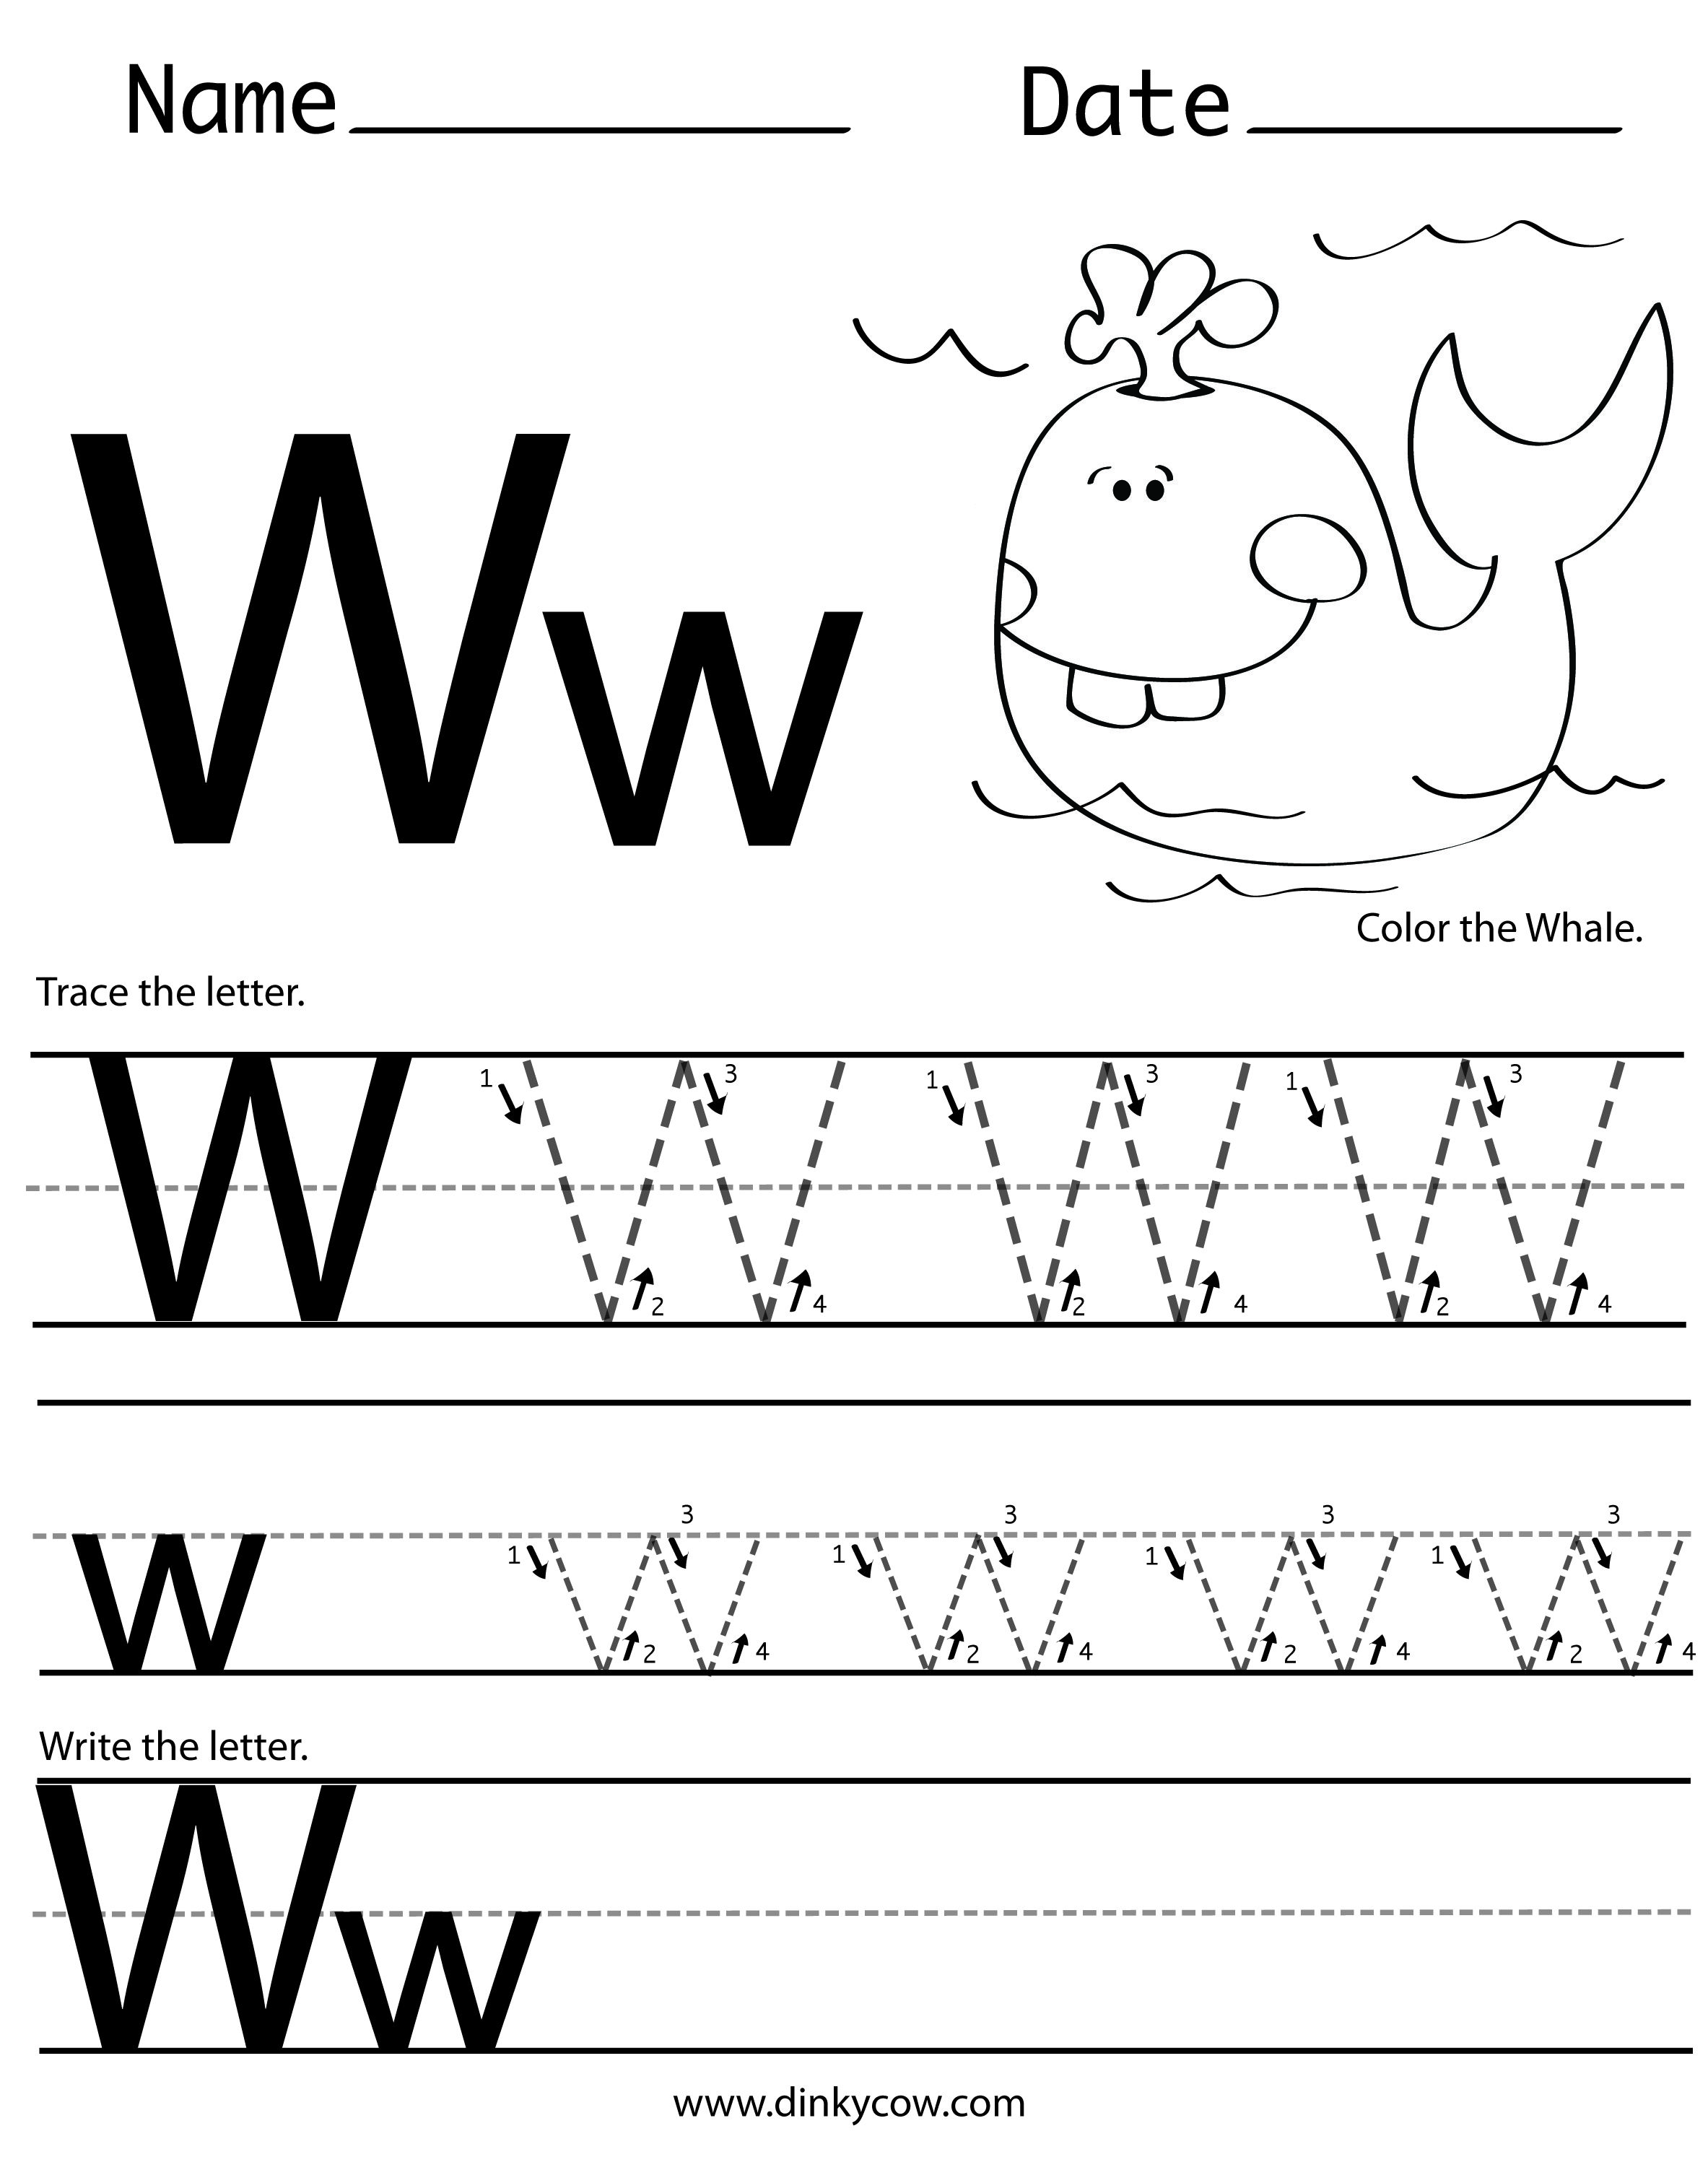 W Free Handwriting Worksheet Print 2 366 2 988 Pixels